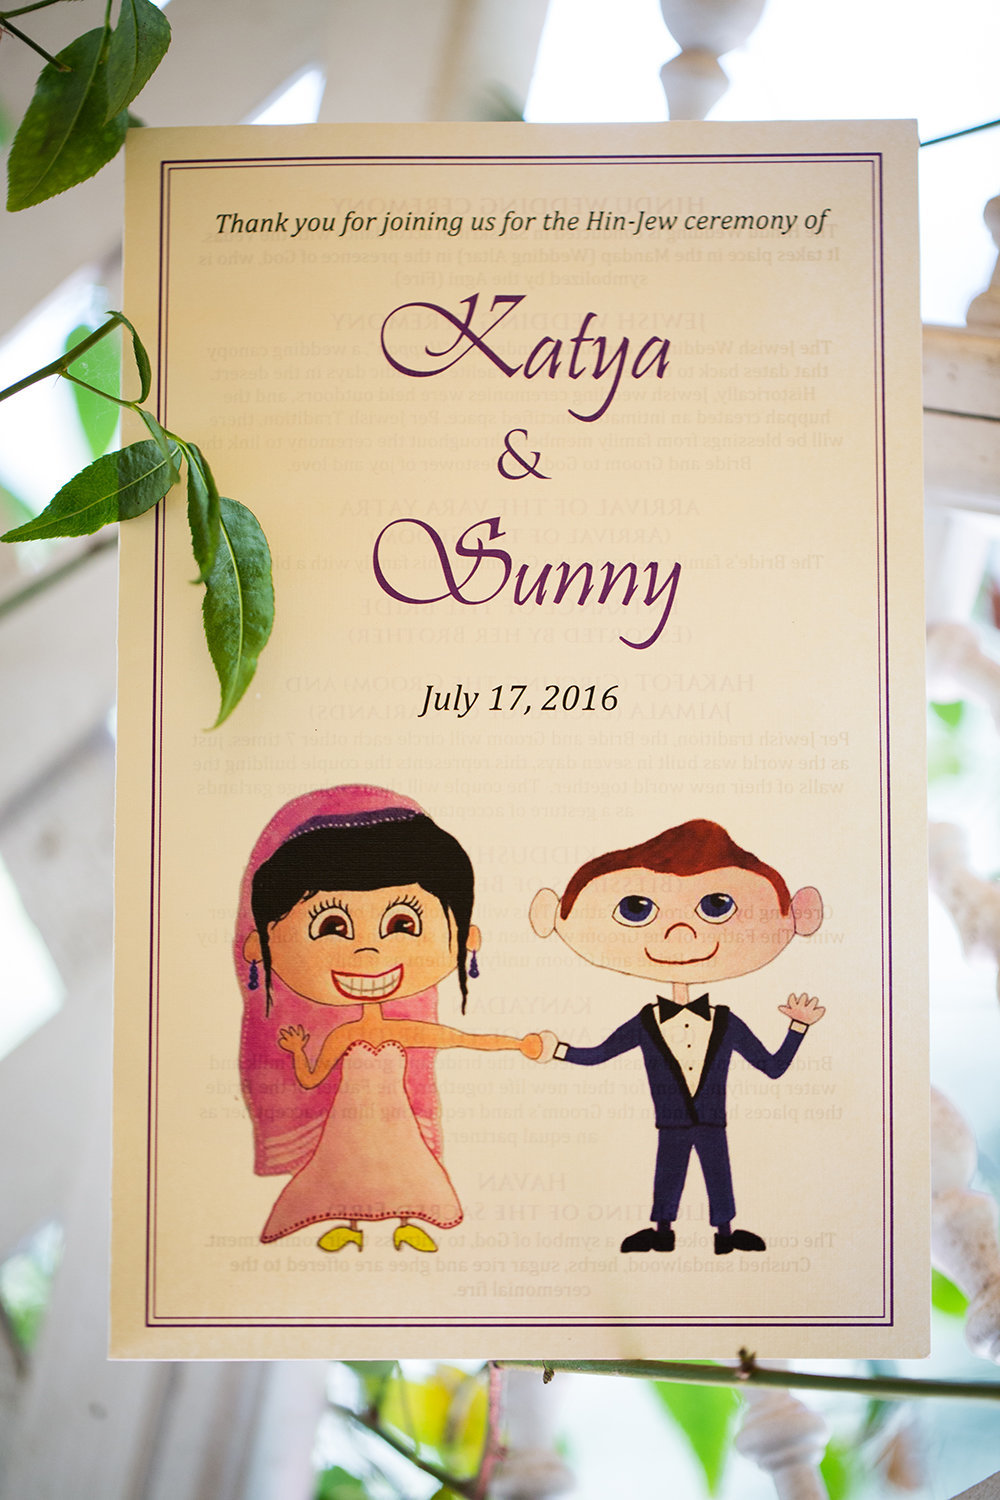 Cute wedding program for a Hindu wedding ceremony